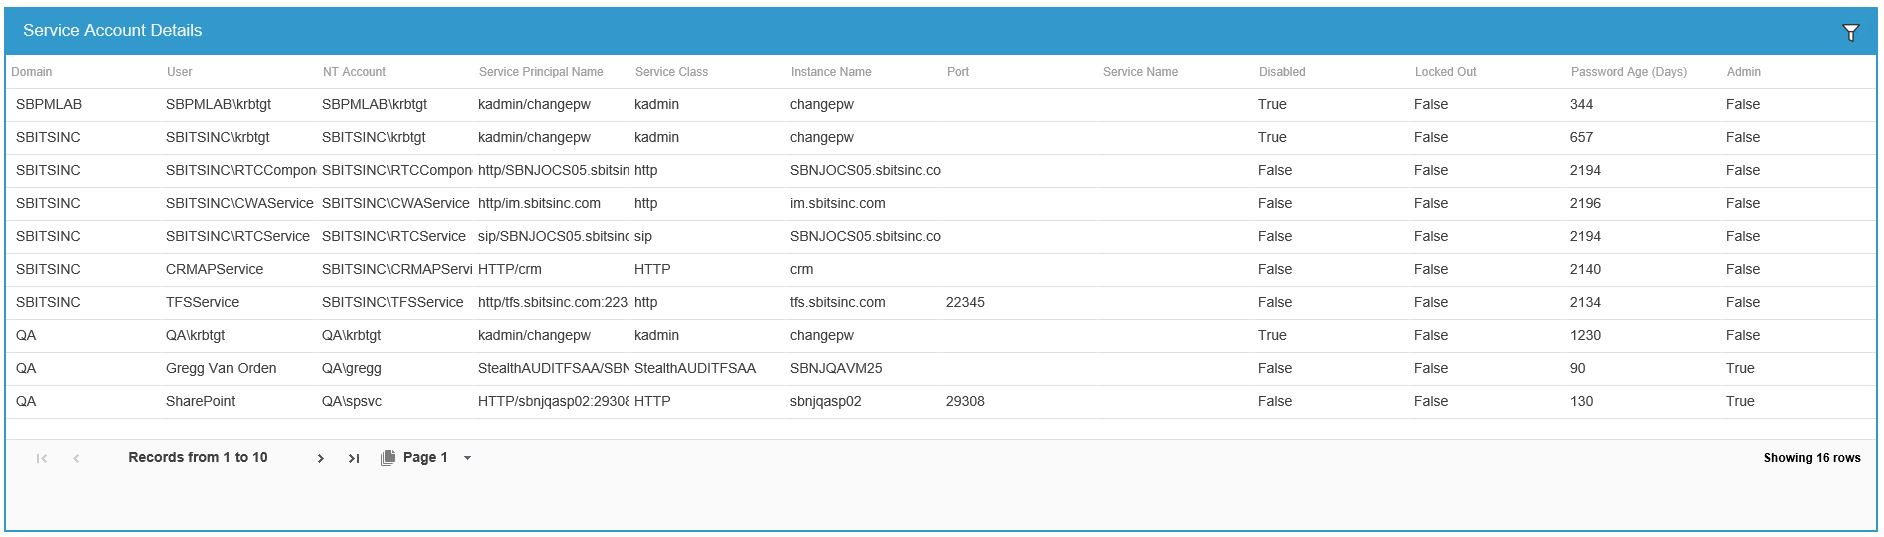 service accounts by domain report shows all service accounts within a domain with their service principal names (SPNs) and password and account status